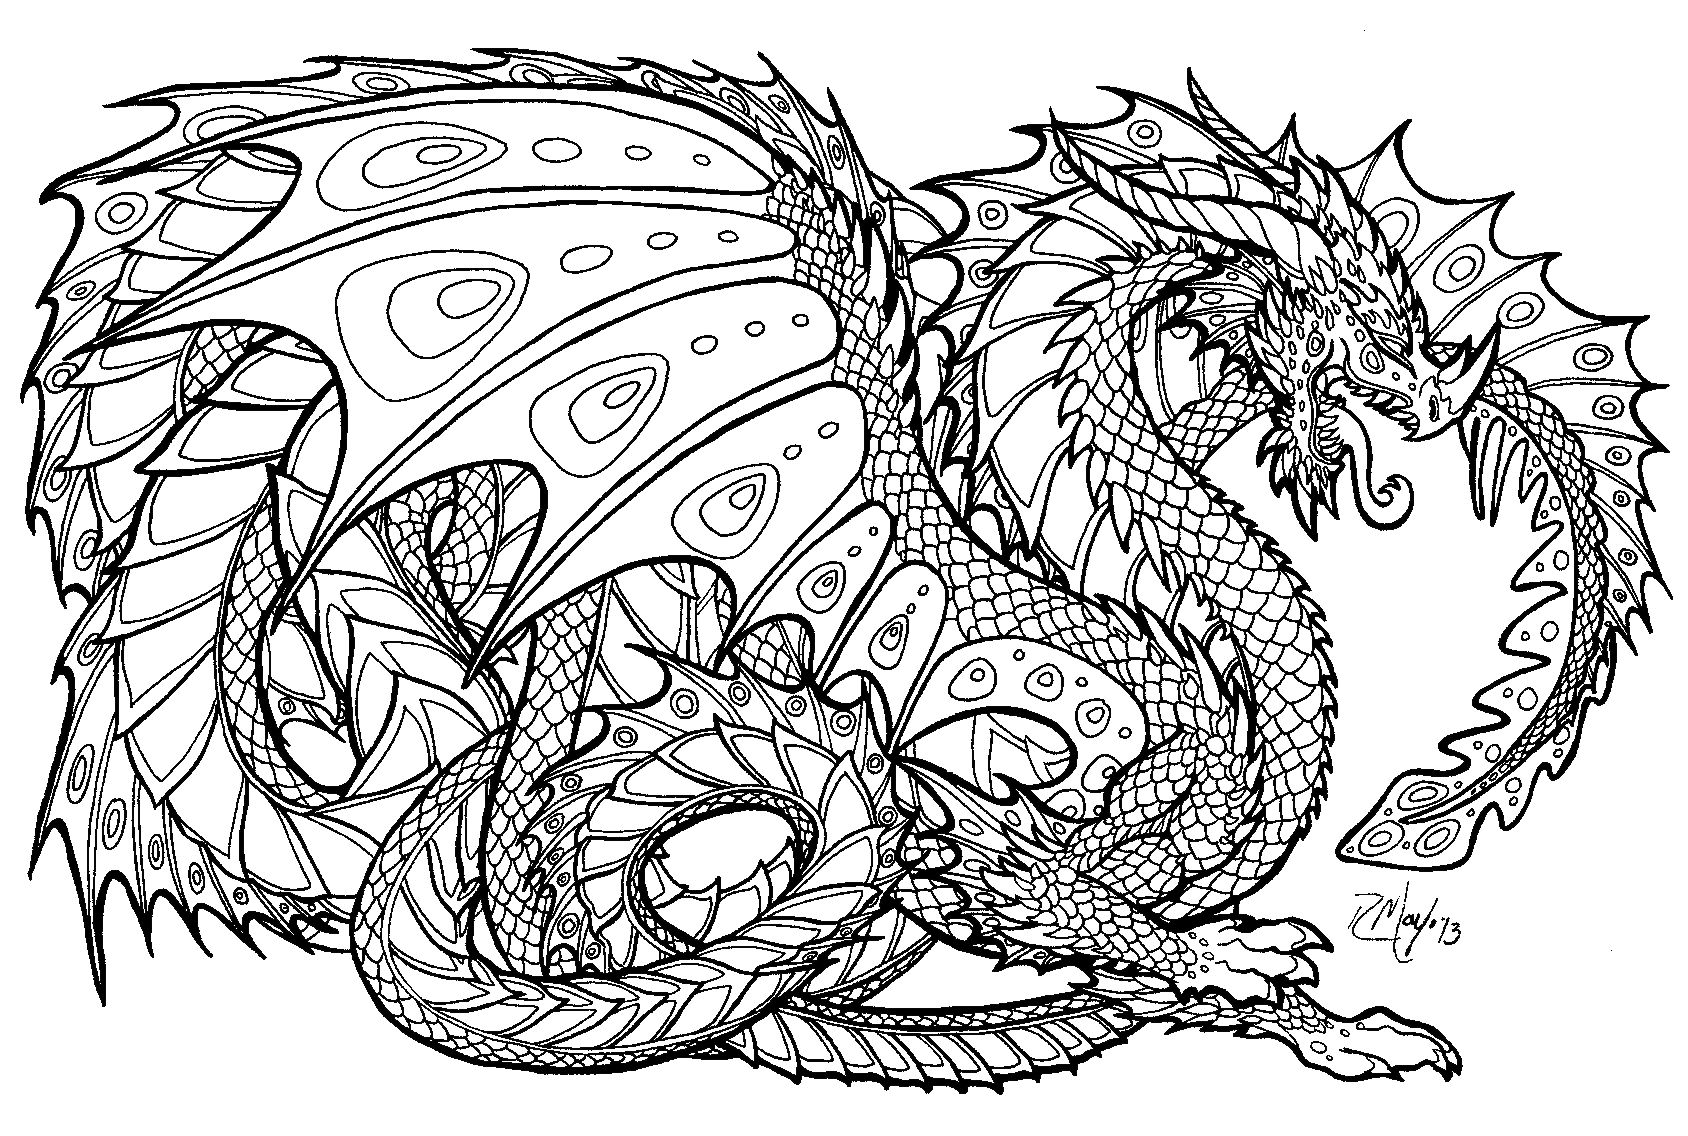 Printable coloring pages and dragons ~ free printable coloring pages for adults advanced dragons ...